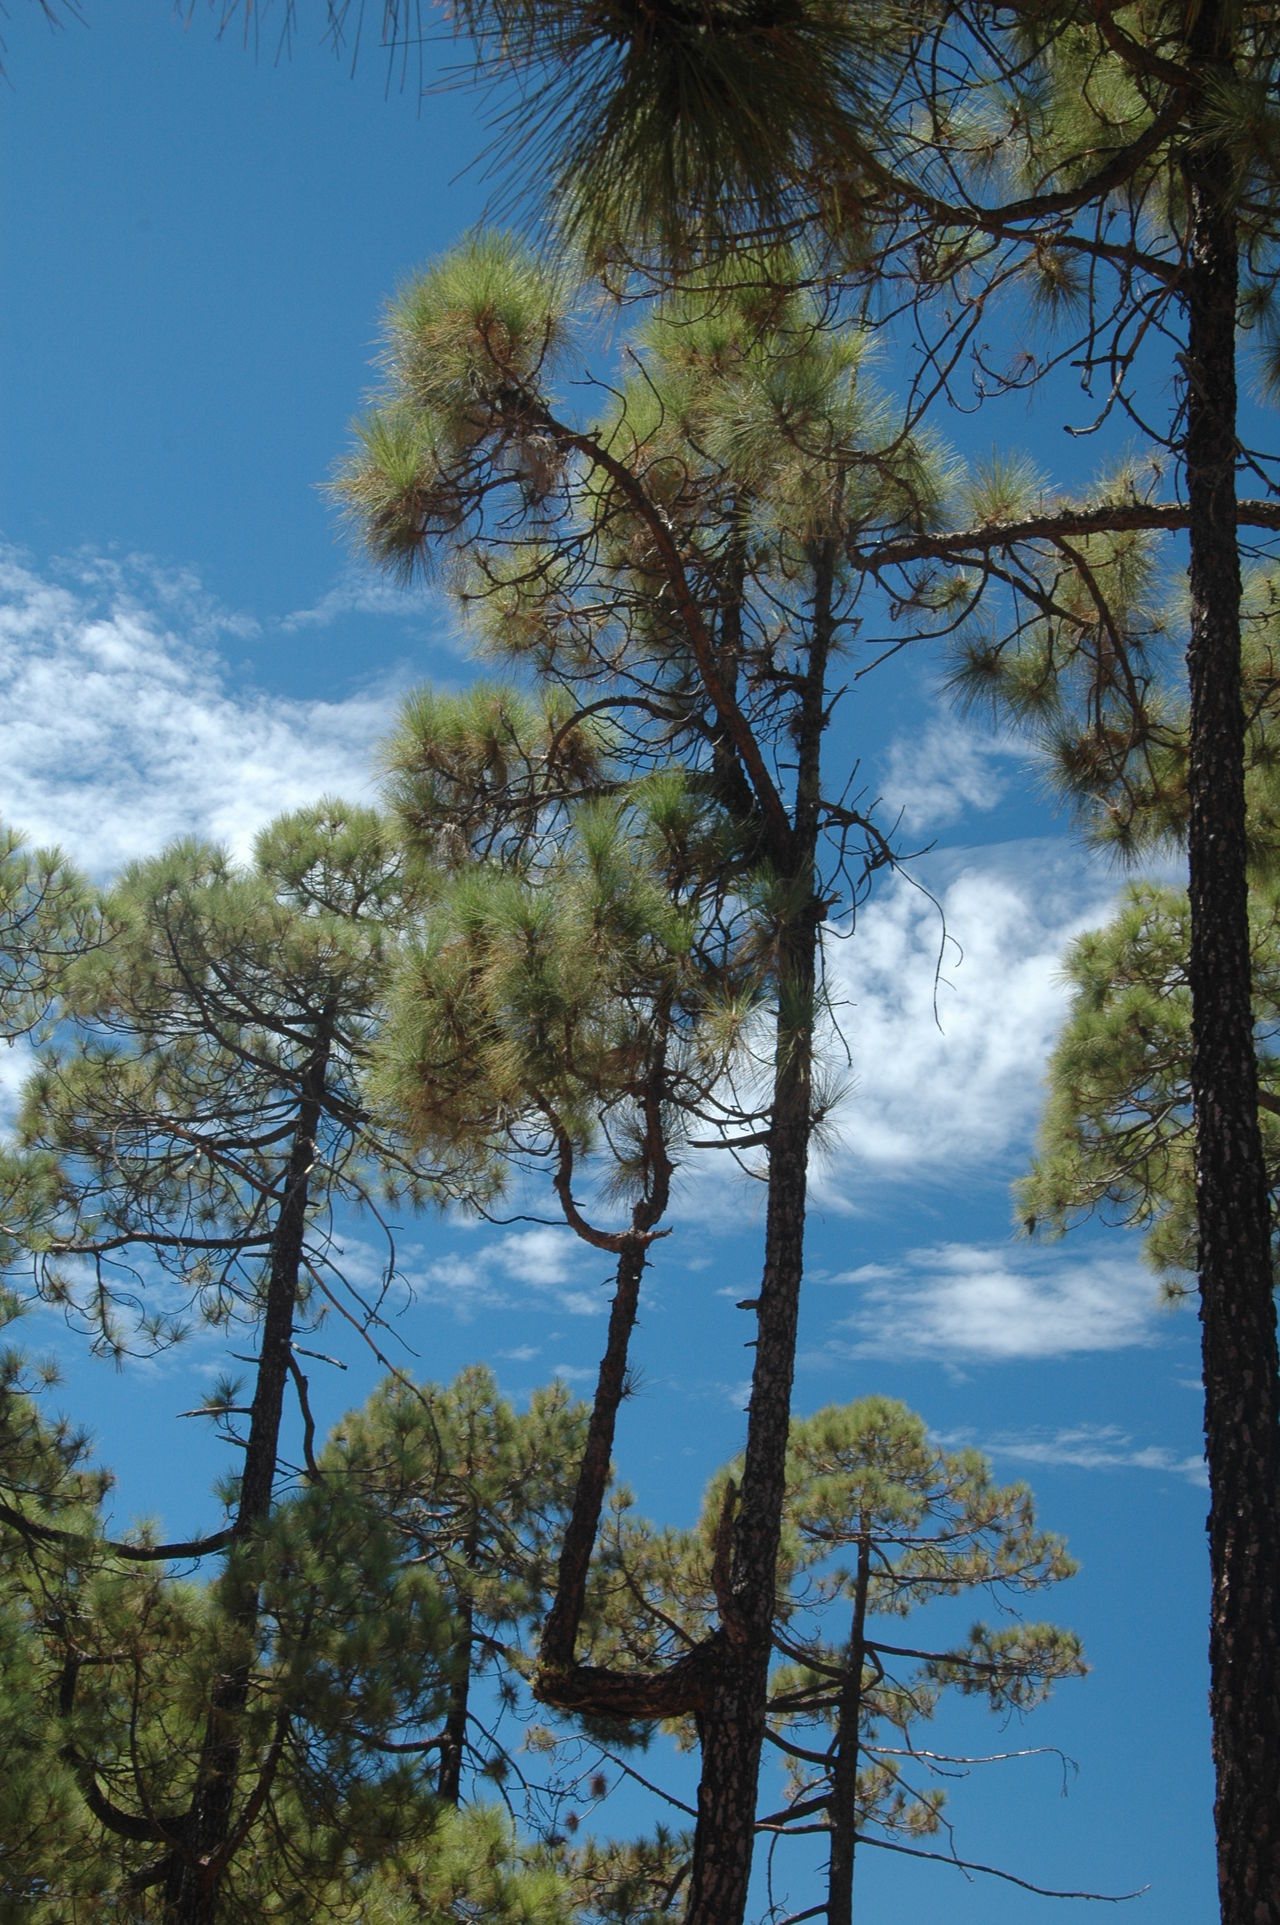 Beauty In Nature Blue Branch Canarias Canary Canary Islands Cho Tenerife Day Growth Low Angle View Mountain Nature Nature No People Outdoors Parque Nacional Del Teide Scenics Sky Teide Teide Volcano Tenerife Tranquility Tree Vulcan